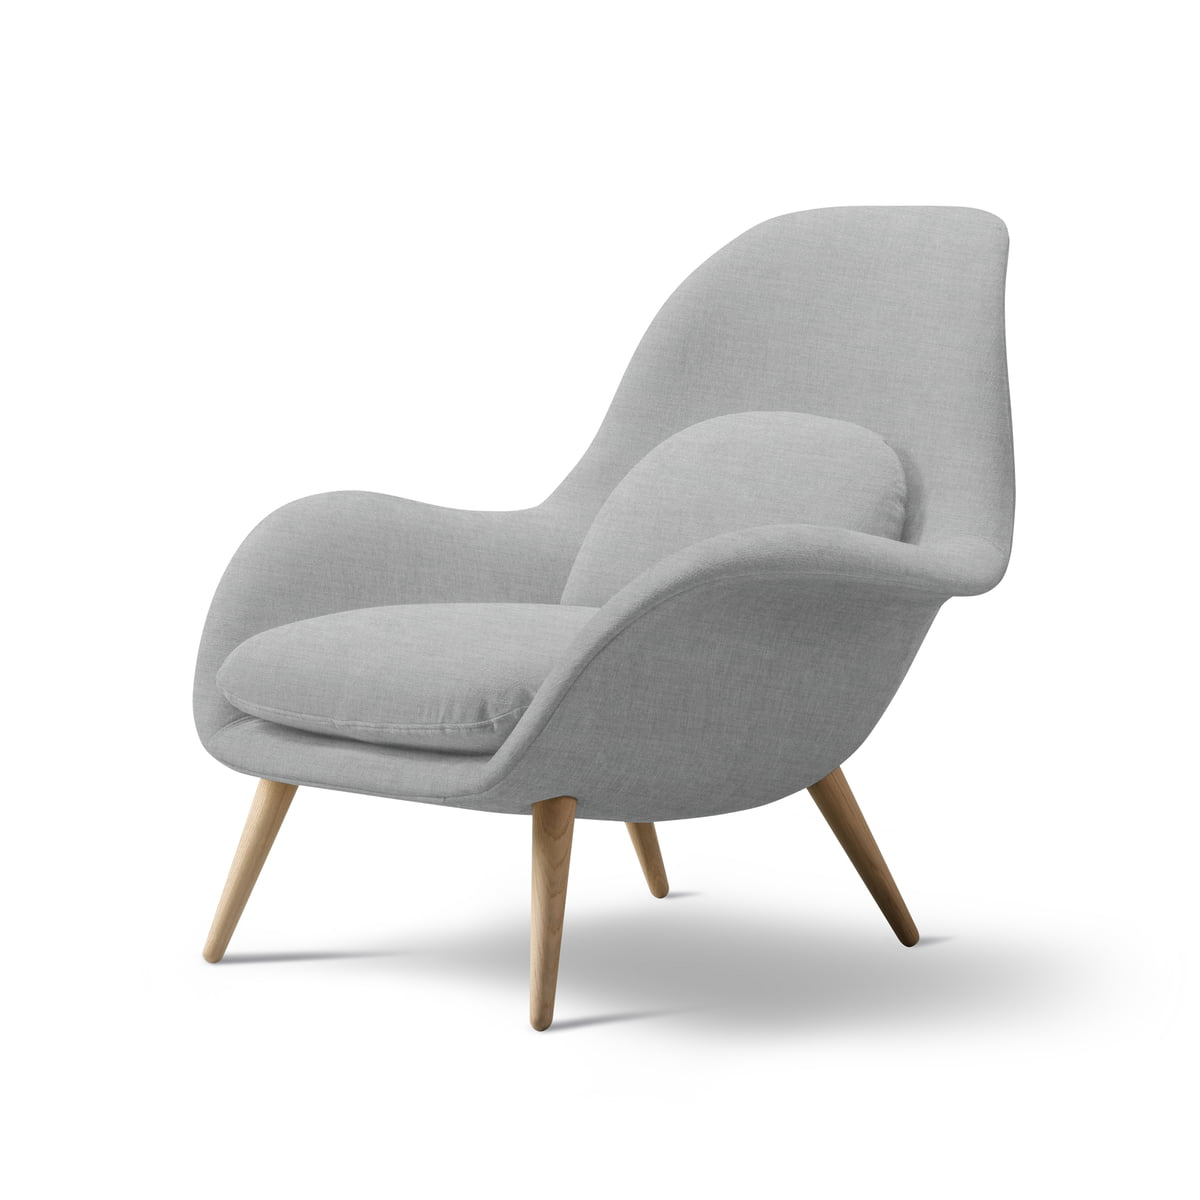 Swoon chair von fredericia connox shop for Sessel english